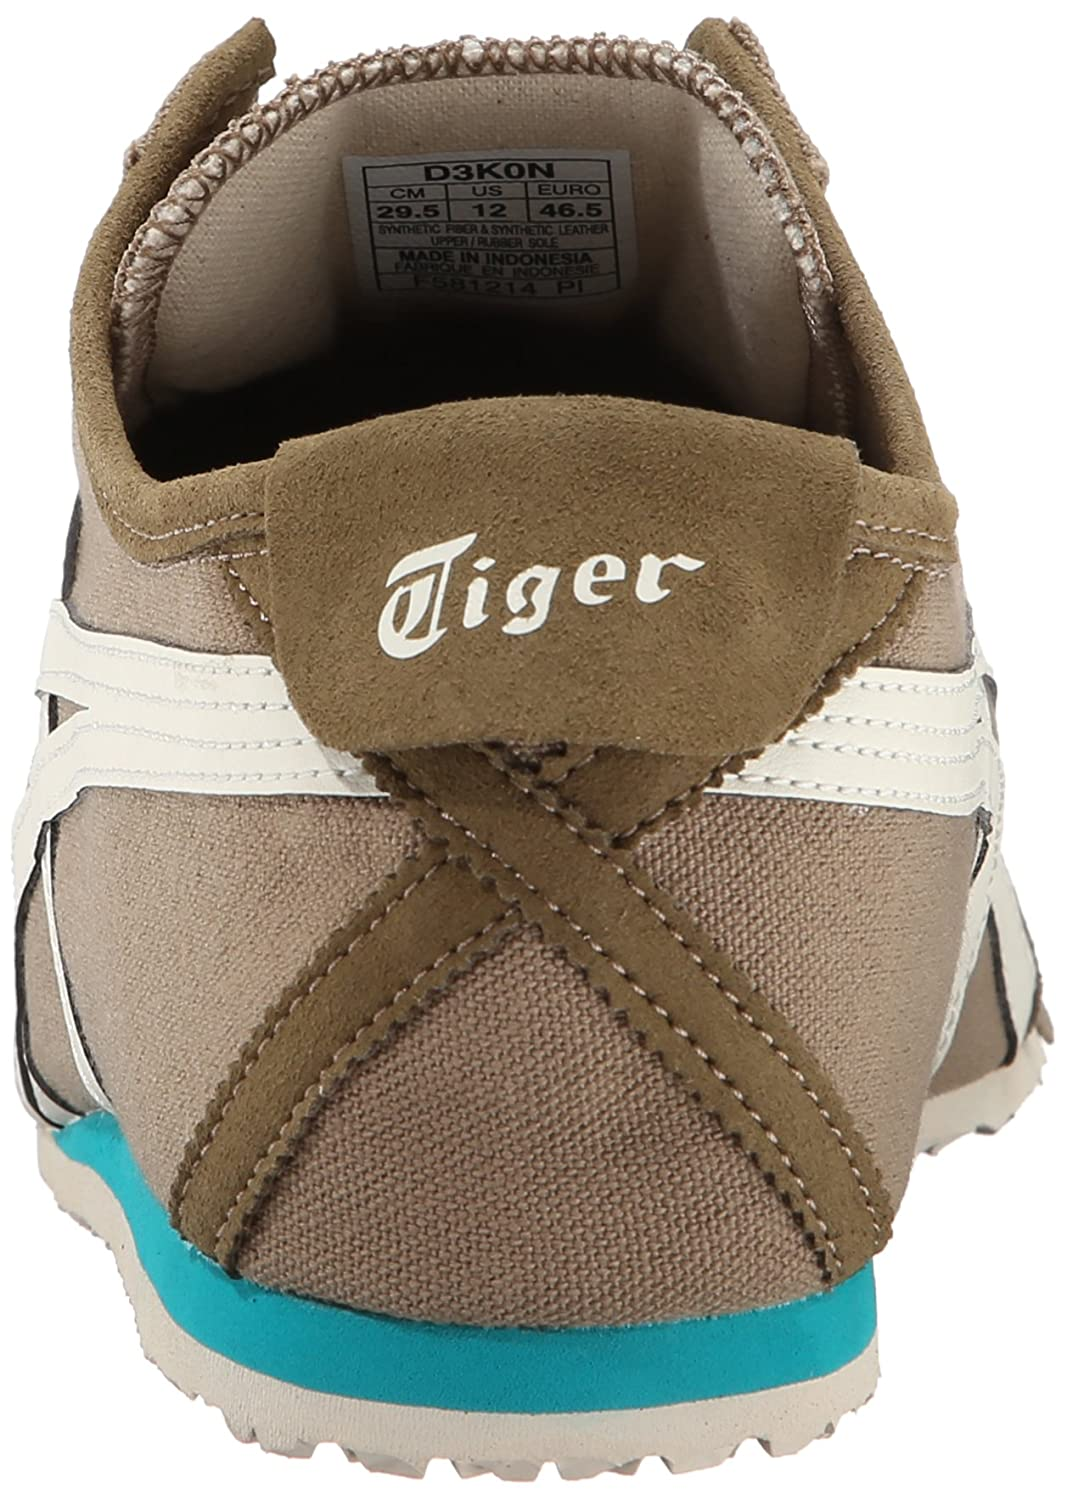 Onitsuka Tiger Mexico 66 Slip-On Classic Running Sneaker B00L8IYOW8 8.5 M US|Light Brown/Sight White